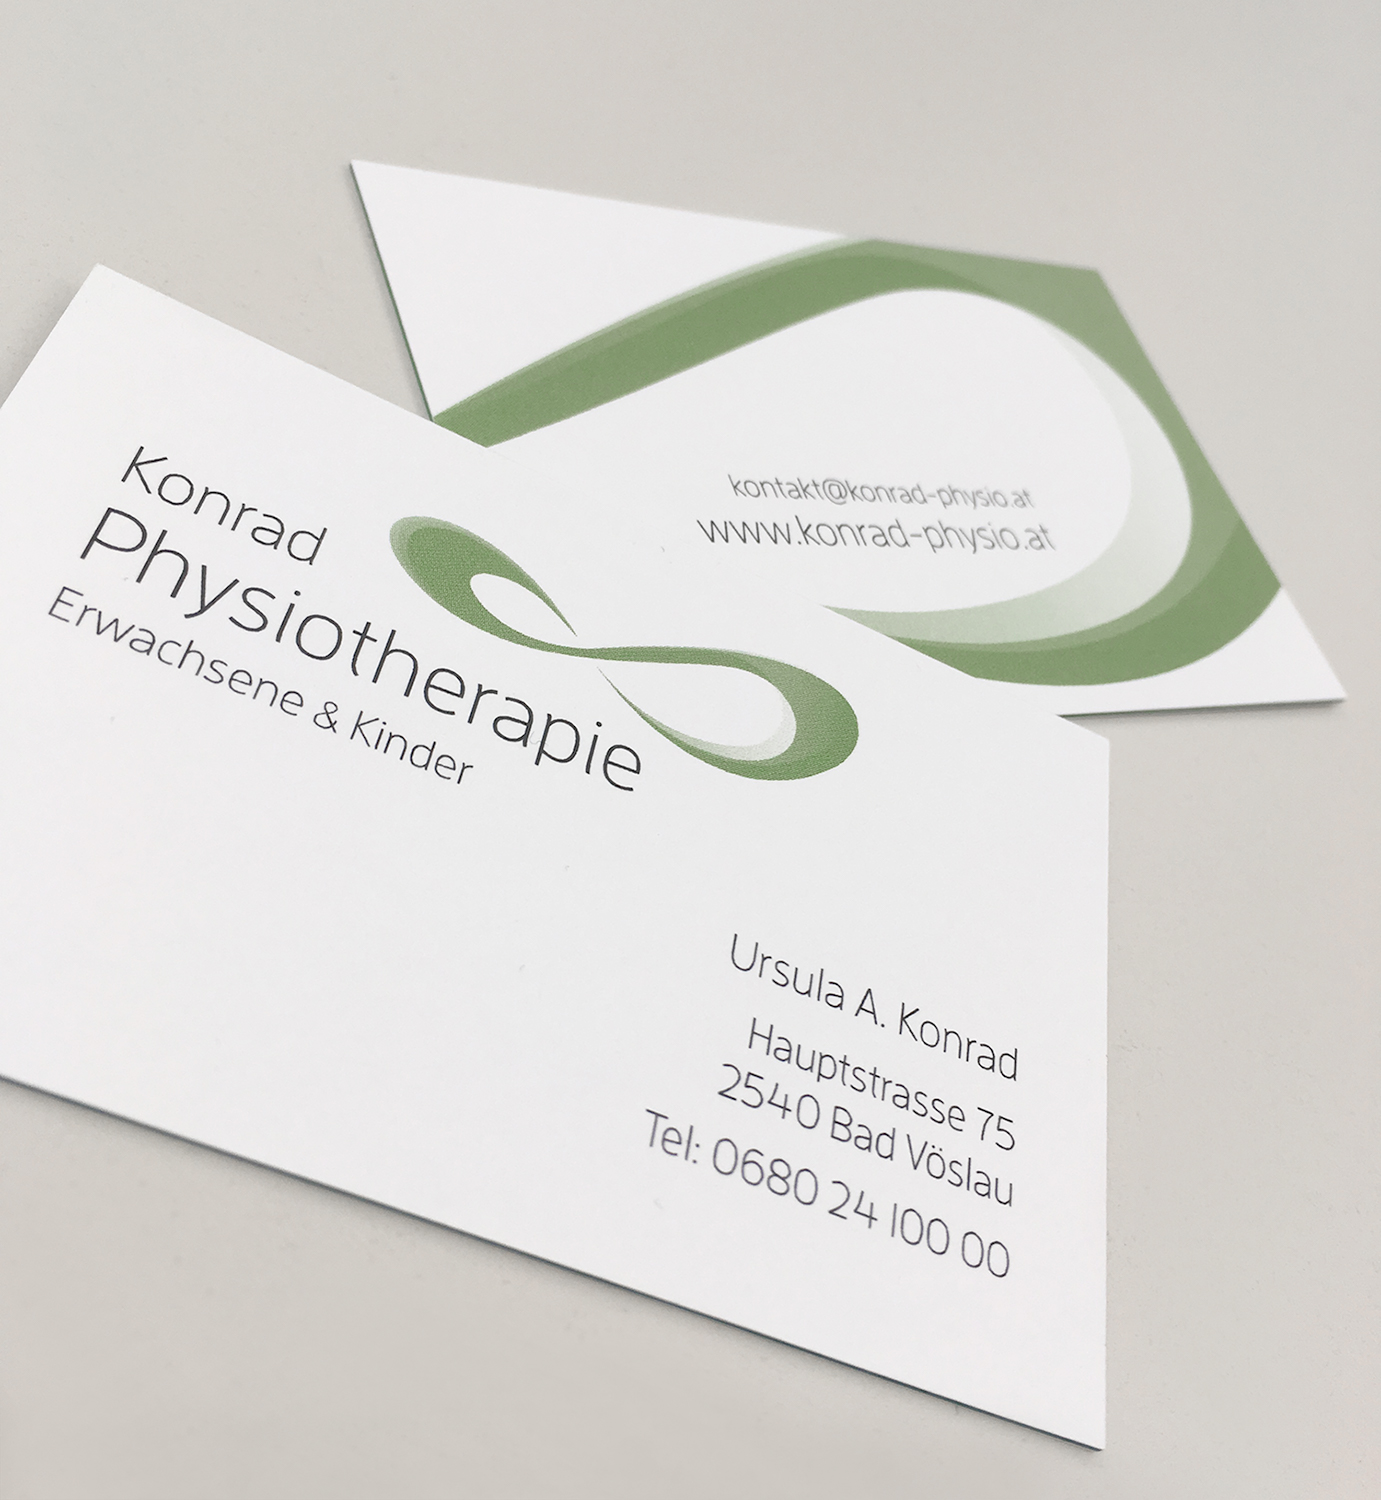 Konrad - Physio - Business Cards